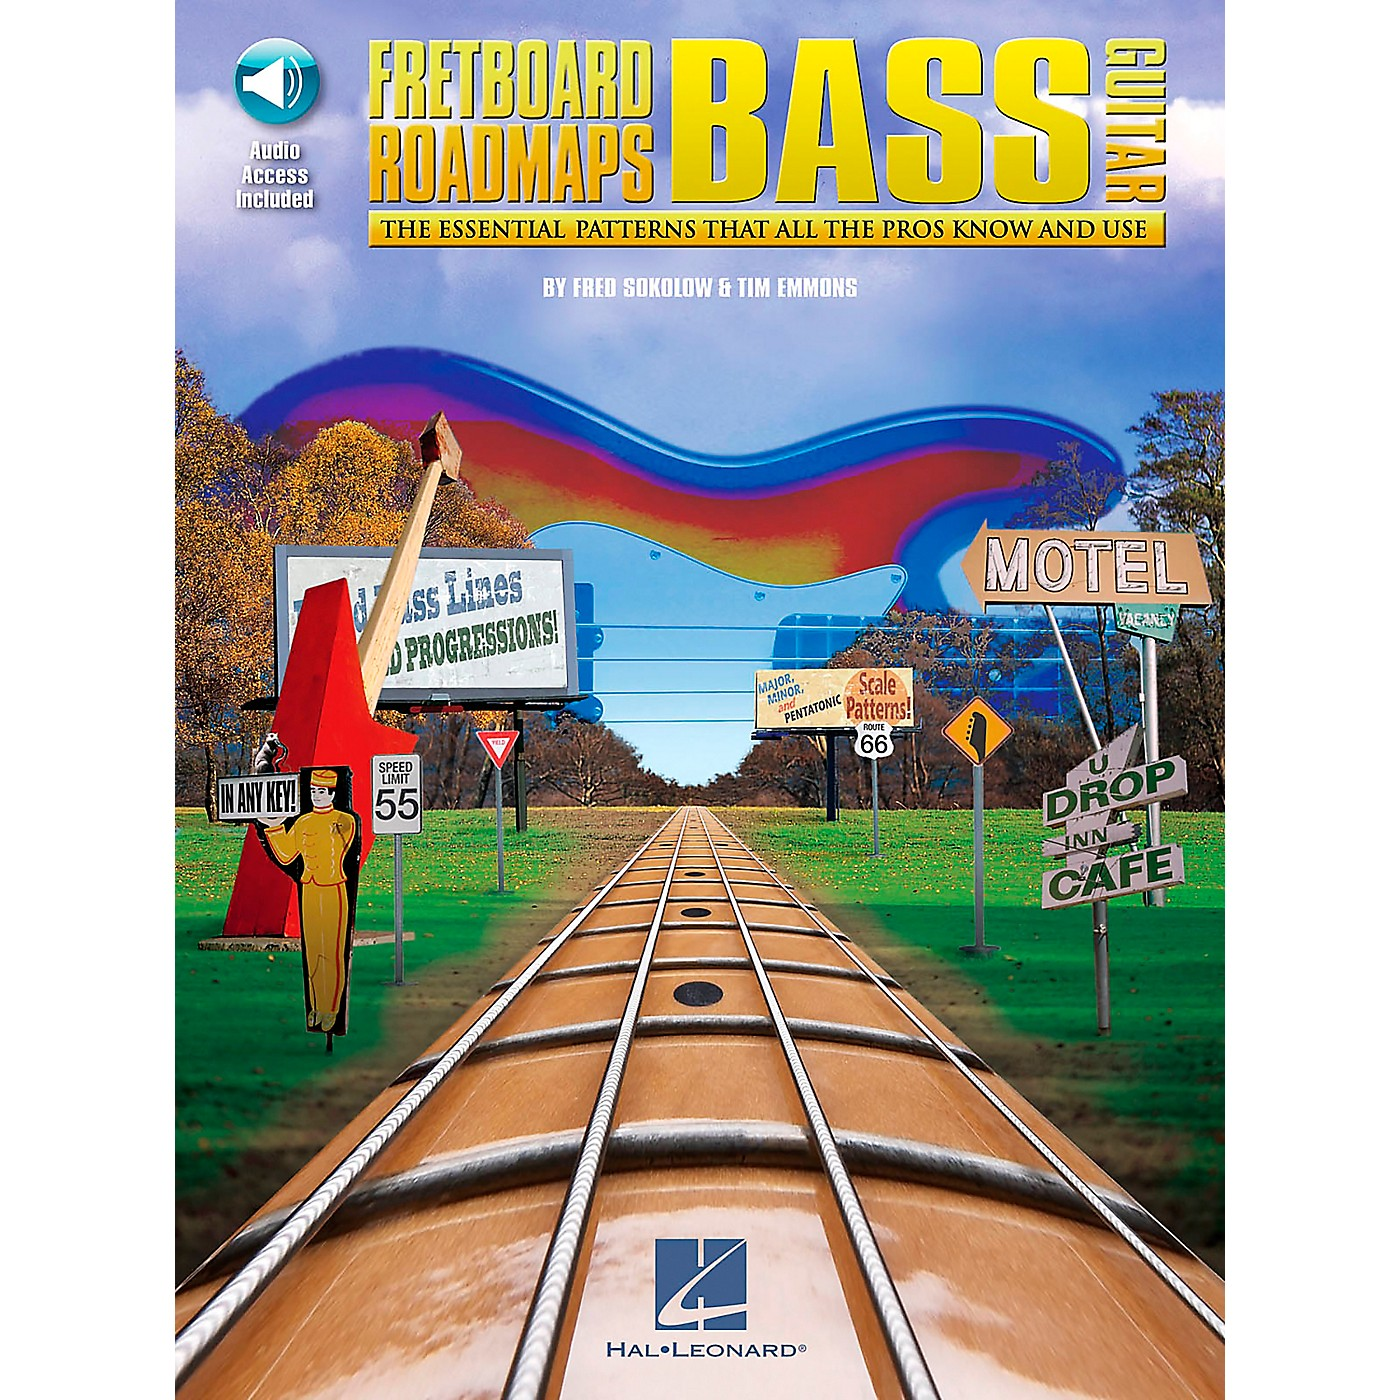 Hal Leonard Fretboard Roadmaps - Bass - The Essential Patterns That All the Pros Know and Use (Book/CD) thumbnail